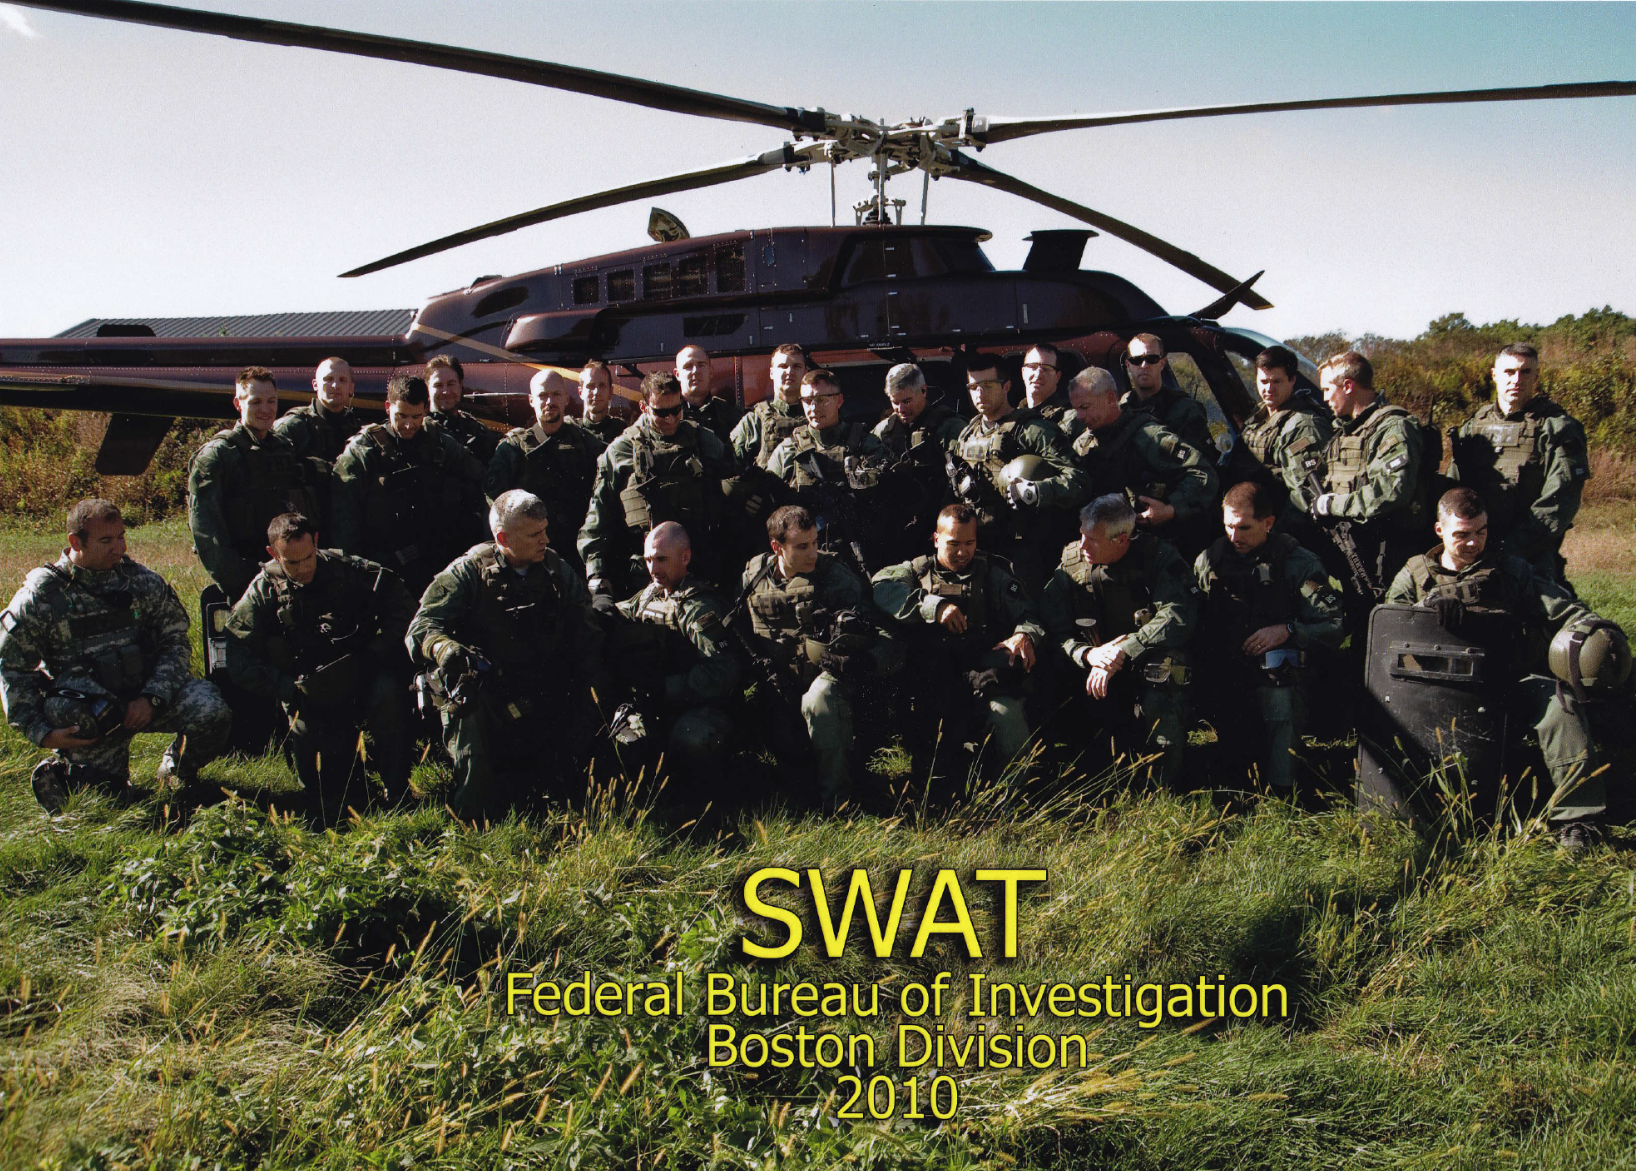 2010 SWAT FBI Boston Division